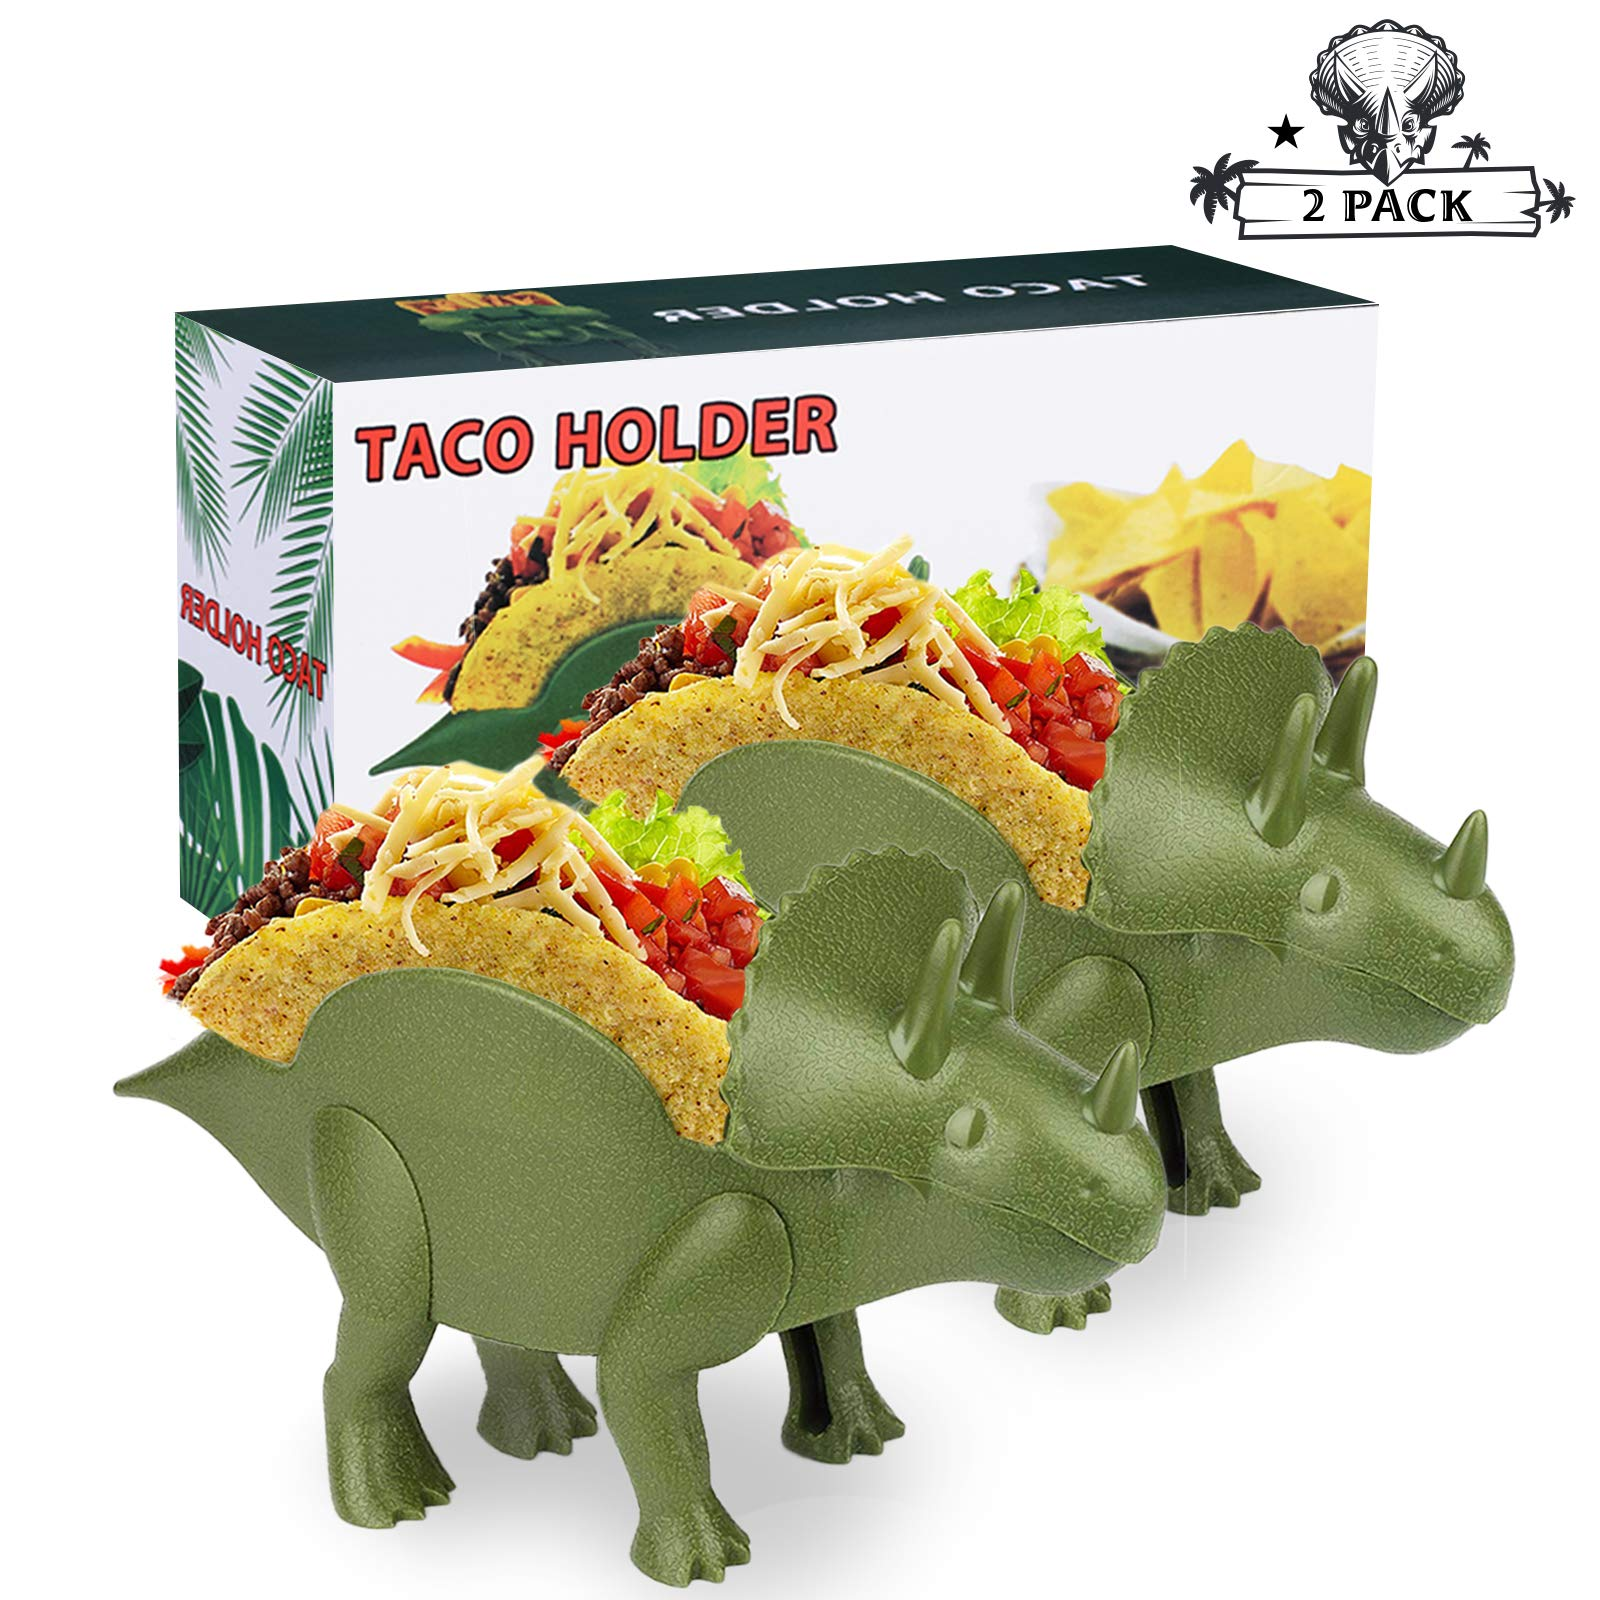 2 Triceratops Taco Holders, Pair Dinosaur Taco Holder Set Perfect Gift, Double-Slotted Dino Taco Holders for Kids 10 x 5.5'' Food Safe Quality Taco Plates with Fun Meal-Time by Bonviee